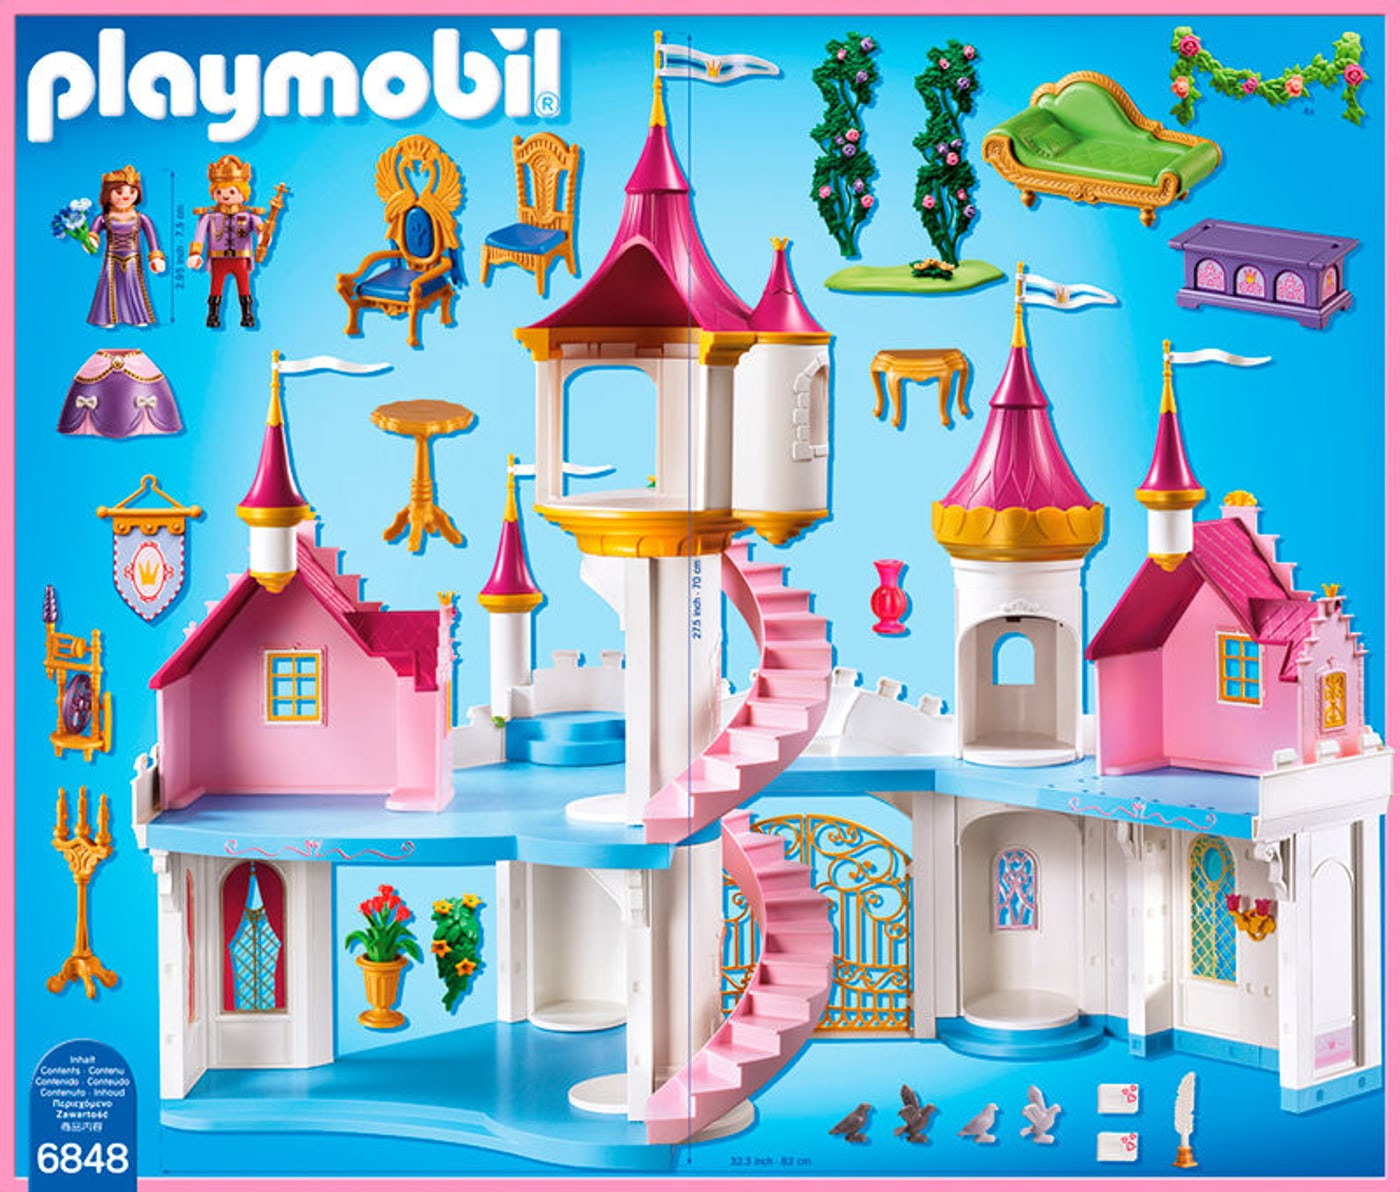 Playmobil princess prinzessinnenschloss 6848 migros for Chateau playmobil 4250